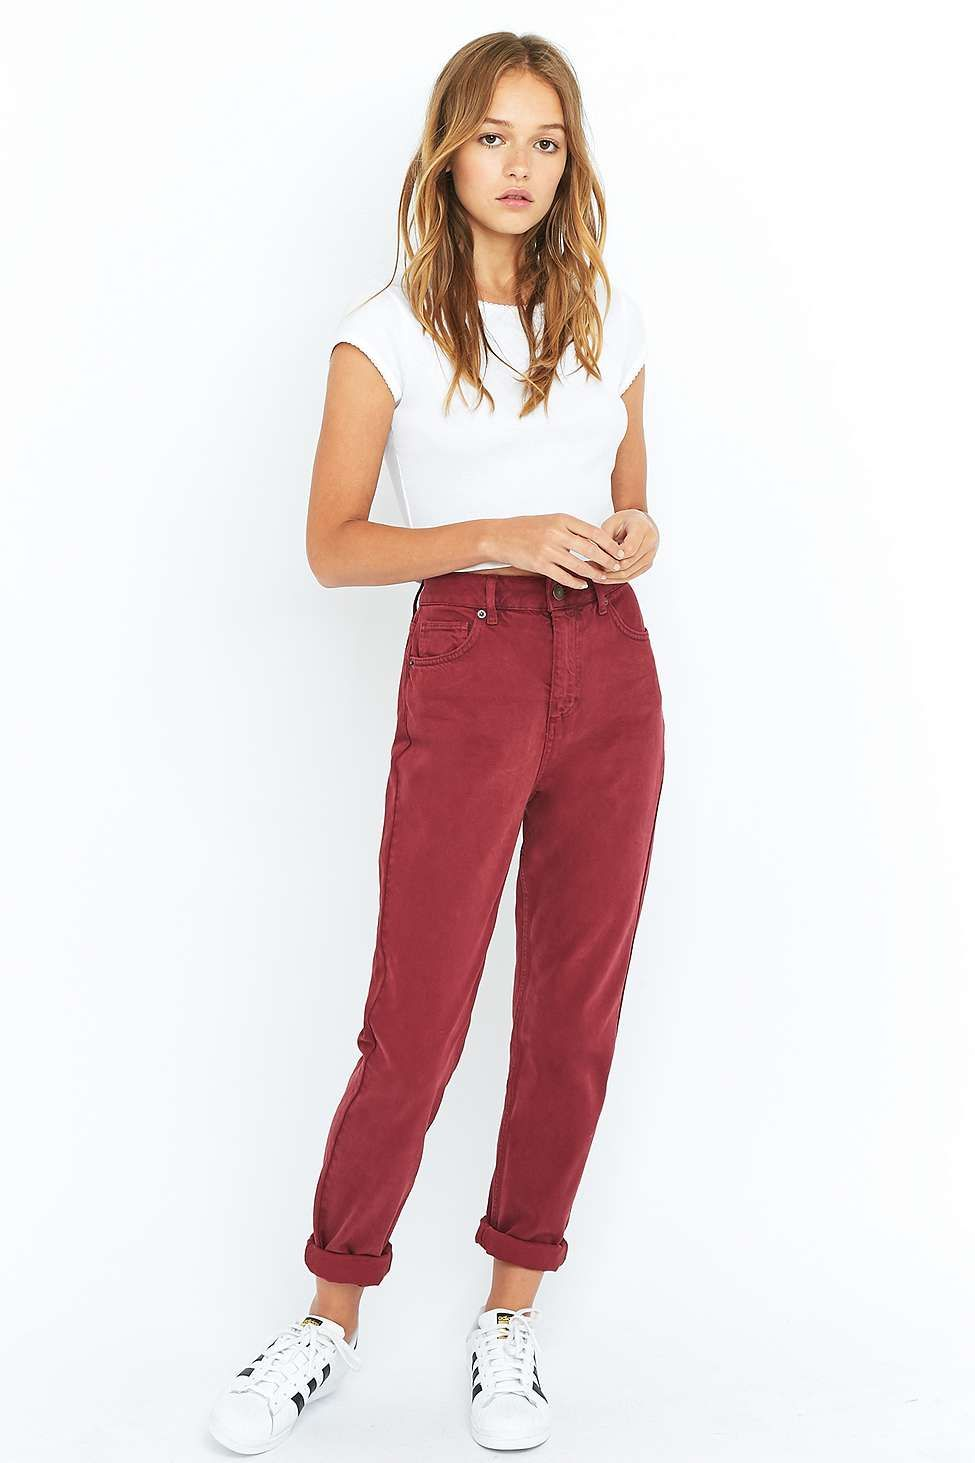 636e59687 BDG Oxblood Red Mom Jeans in 2019 | Personal aesthetic | Mom jeans ...